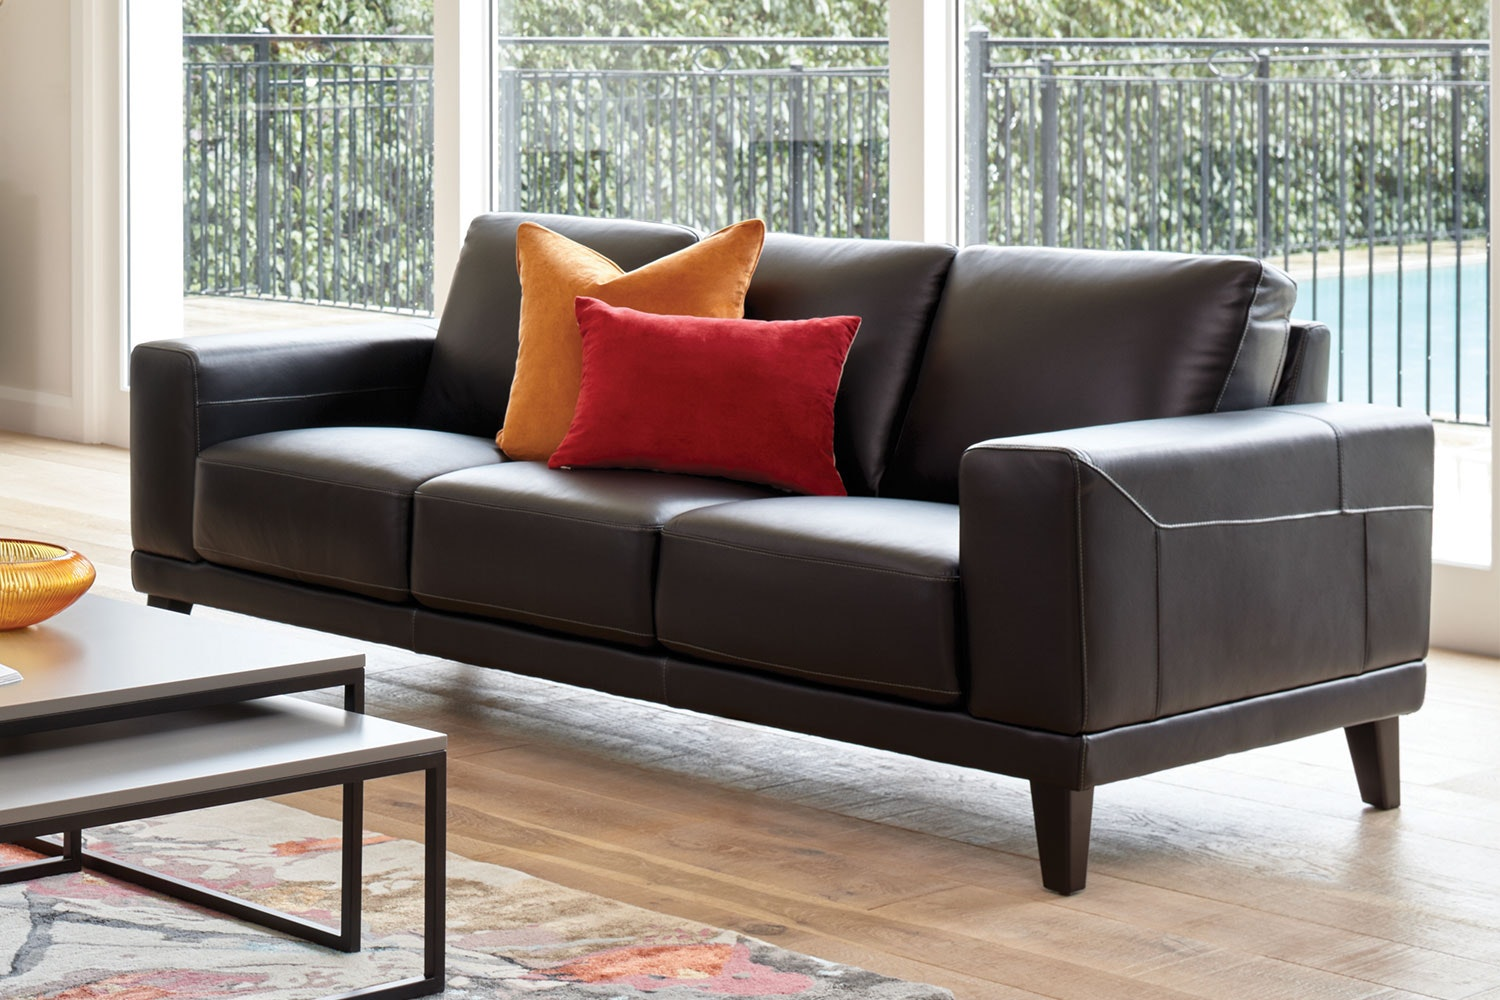 Aries 3 Seater Leather Sofa